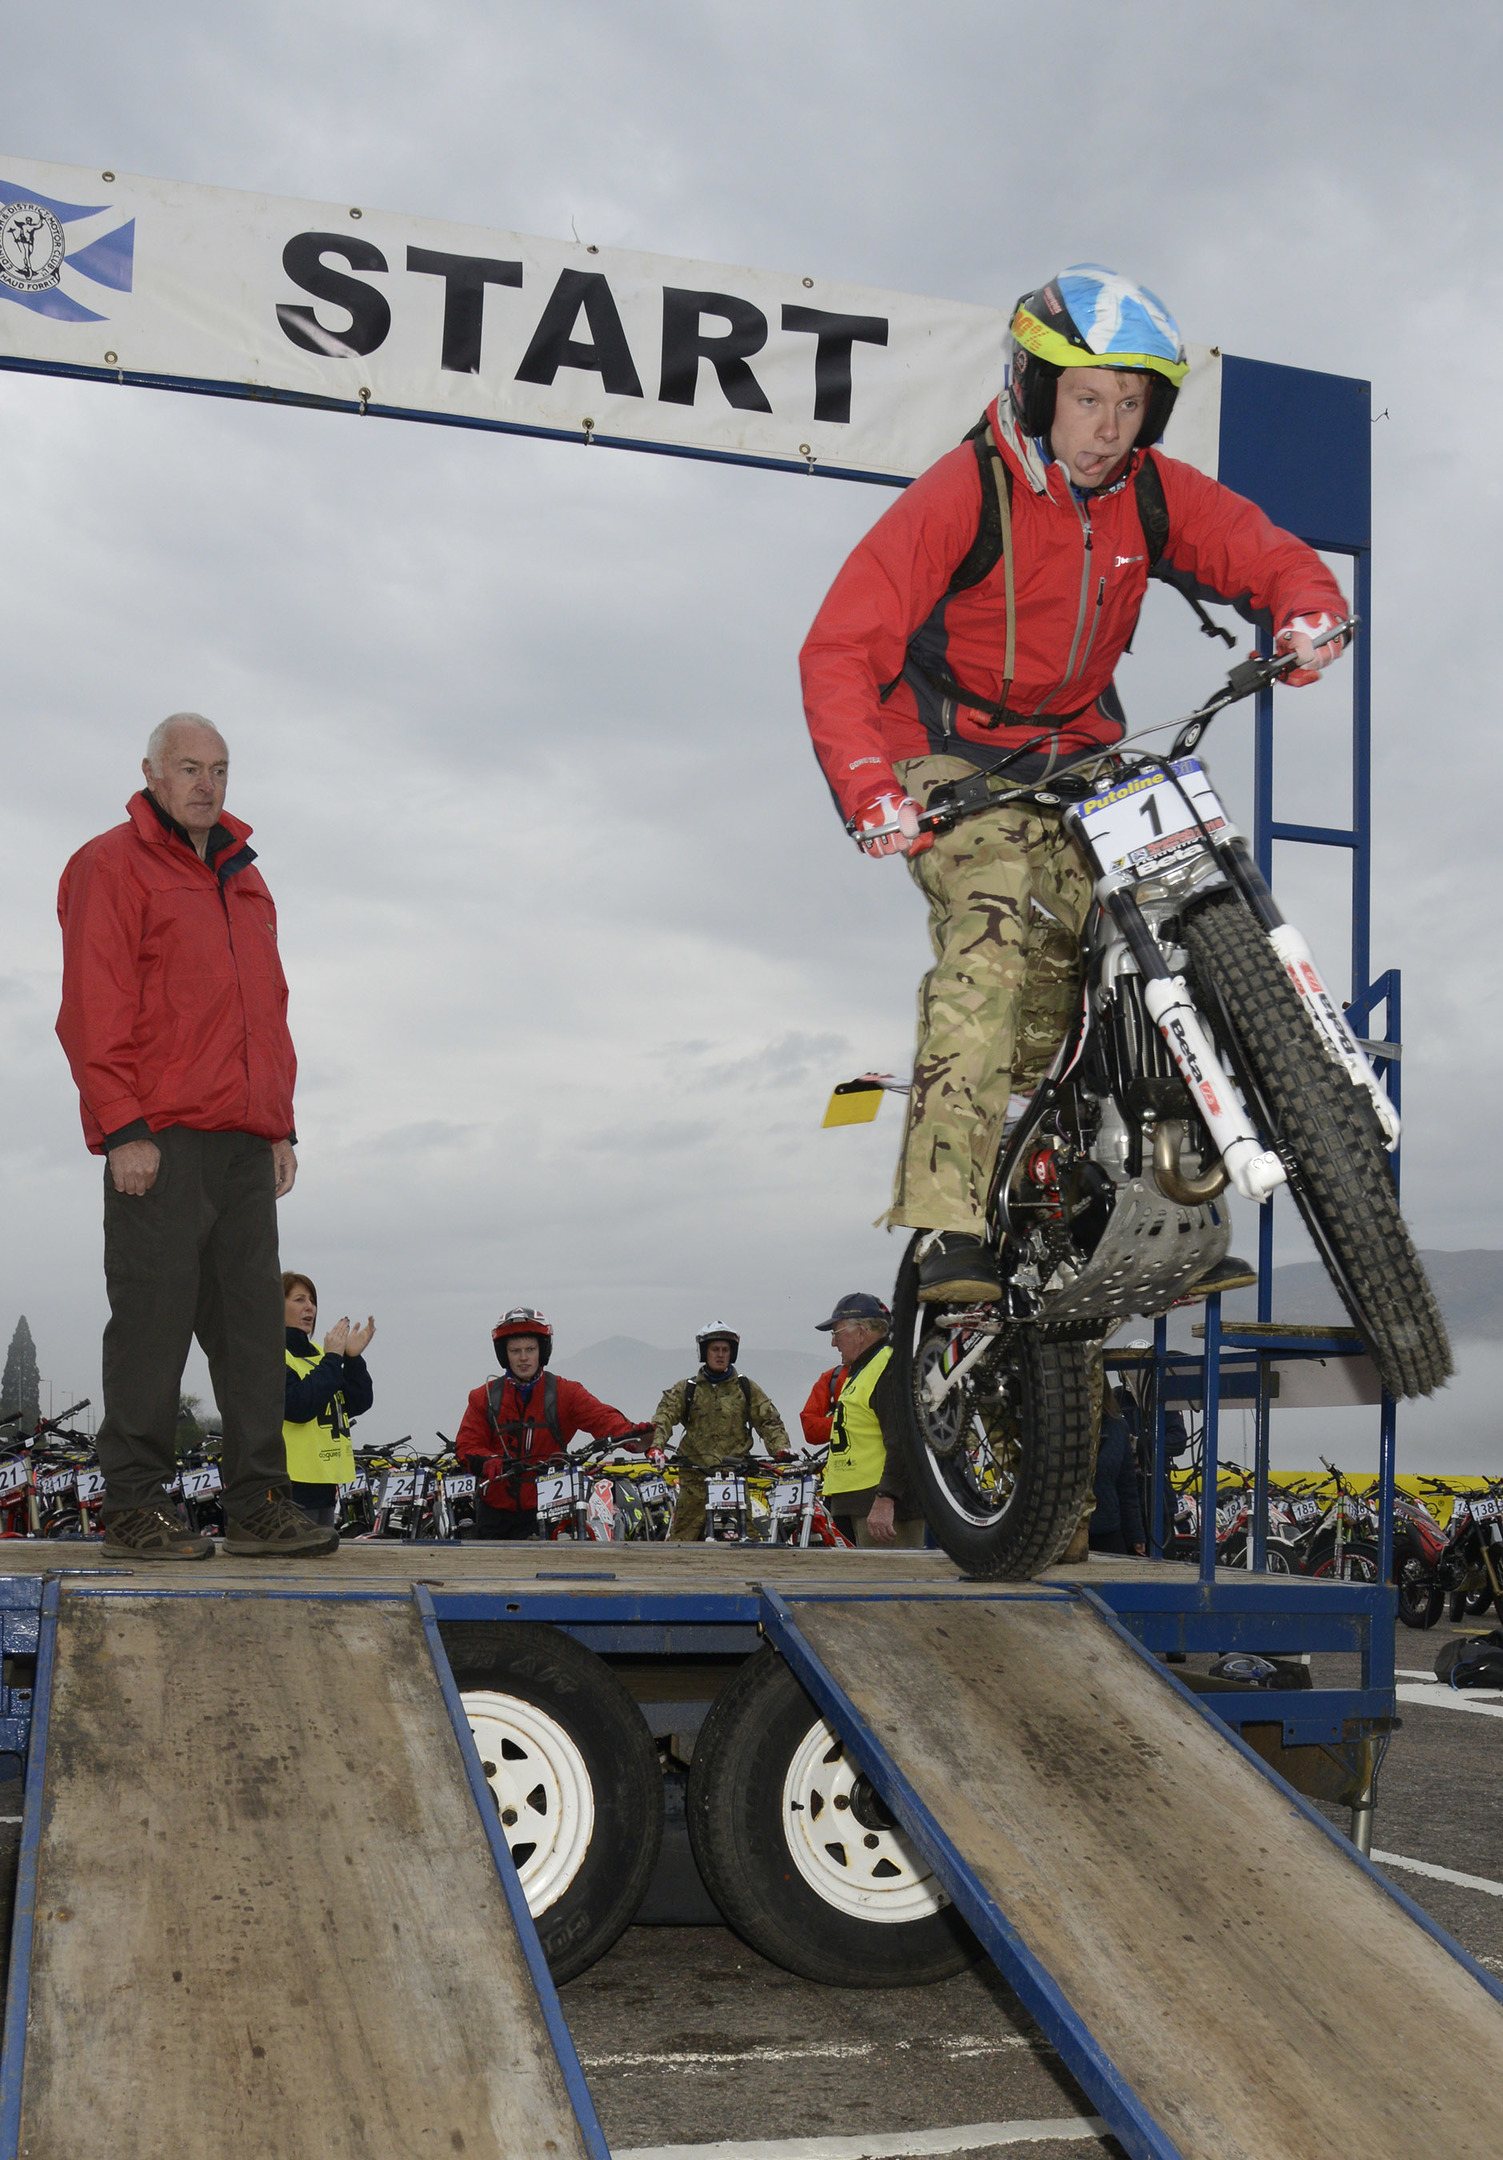 Army rider Stuart Mack leaps from the starting podium flagged off by Lt Col. (ret) Mike Tizzard of the Army Motorcycle Club. Picture: Iain Ferguson.